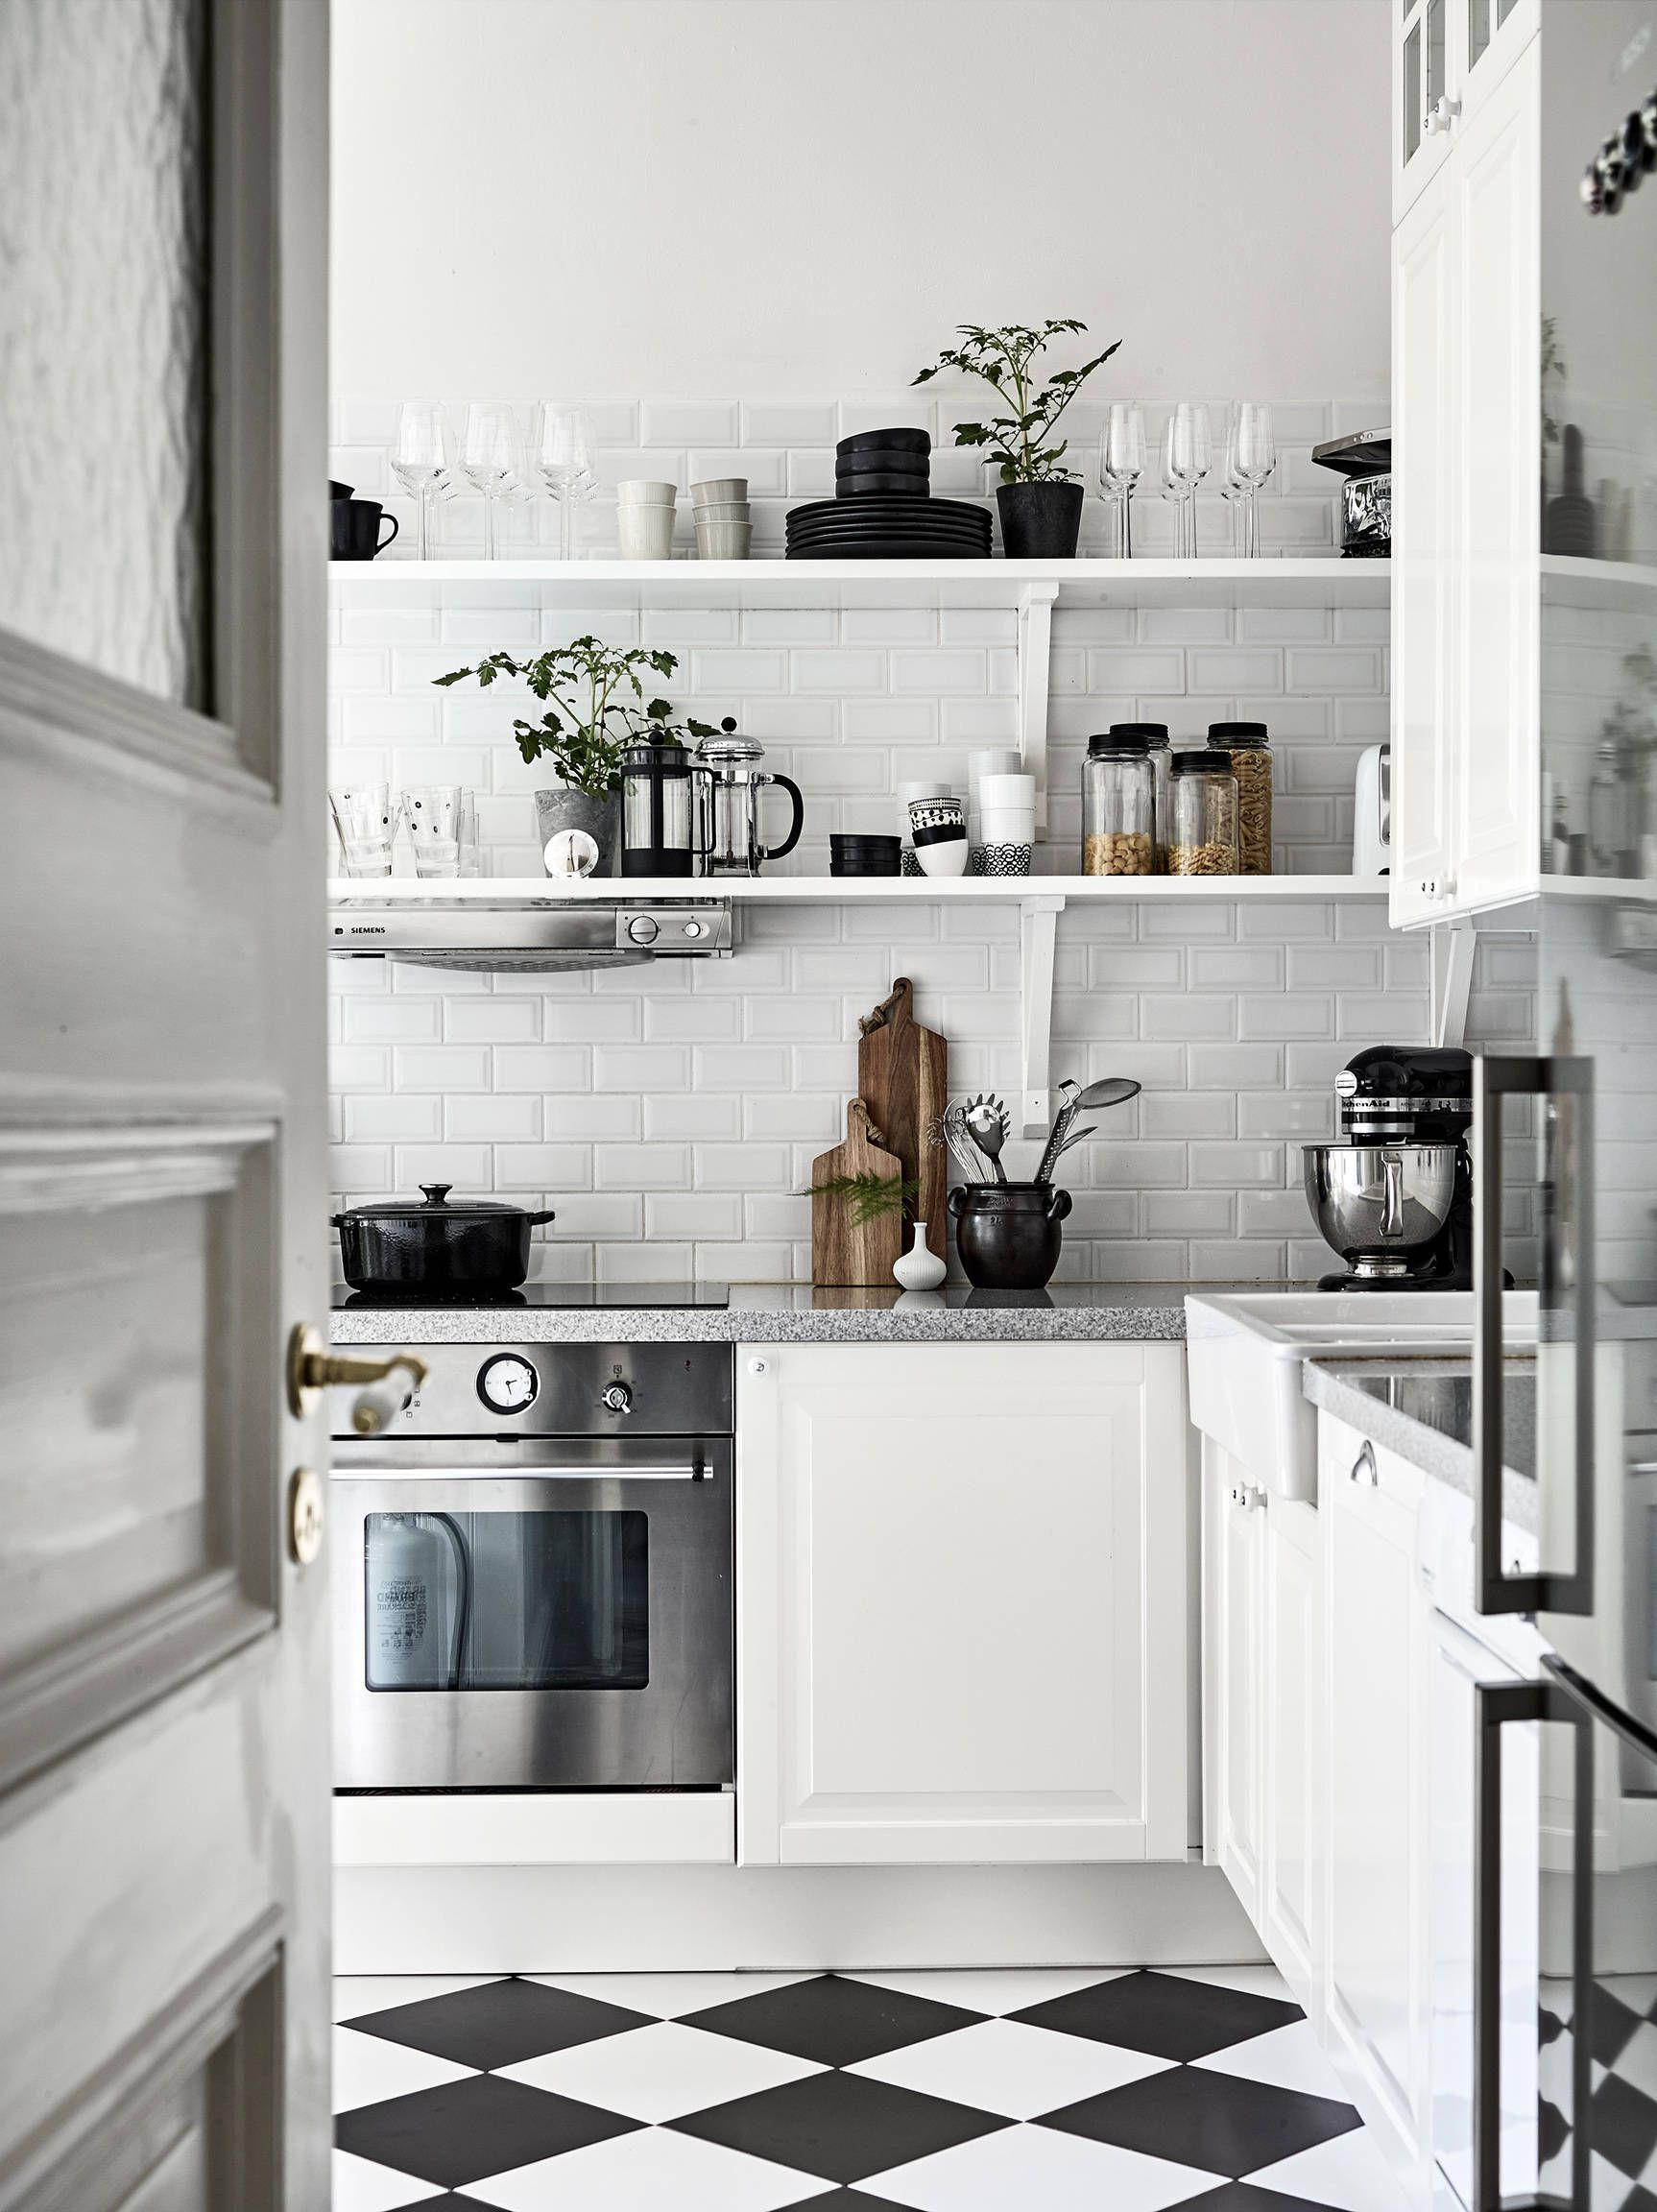 Neat Monochromatic Kitchens Looks Gorgeous In Black And White But How Do You Keep It Tidy White Kitchen Design Scandinavian Kitchen Design Kitchen Renovation